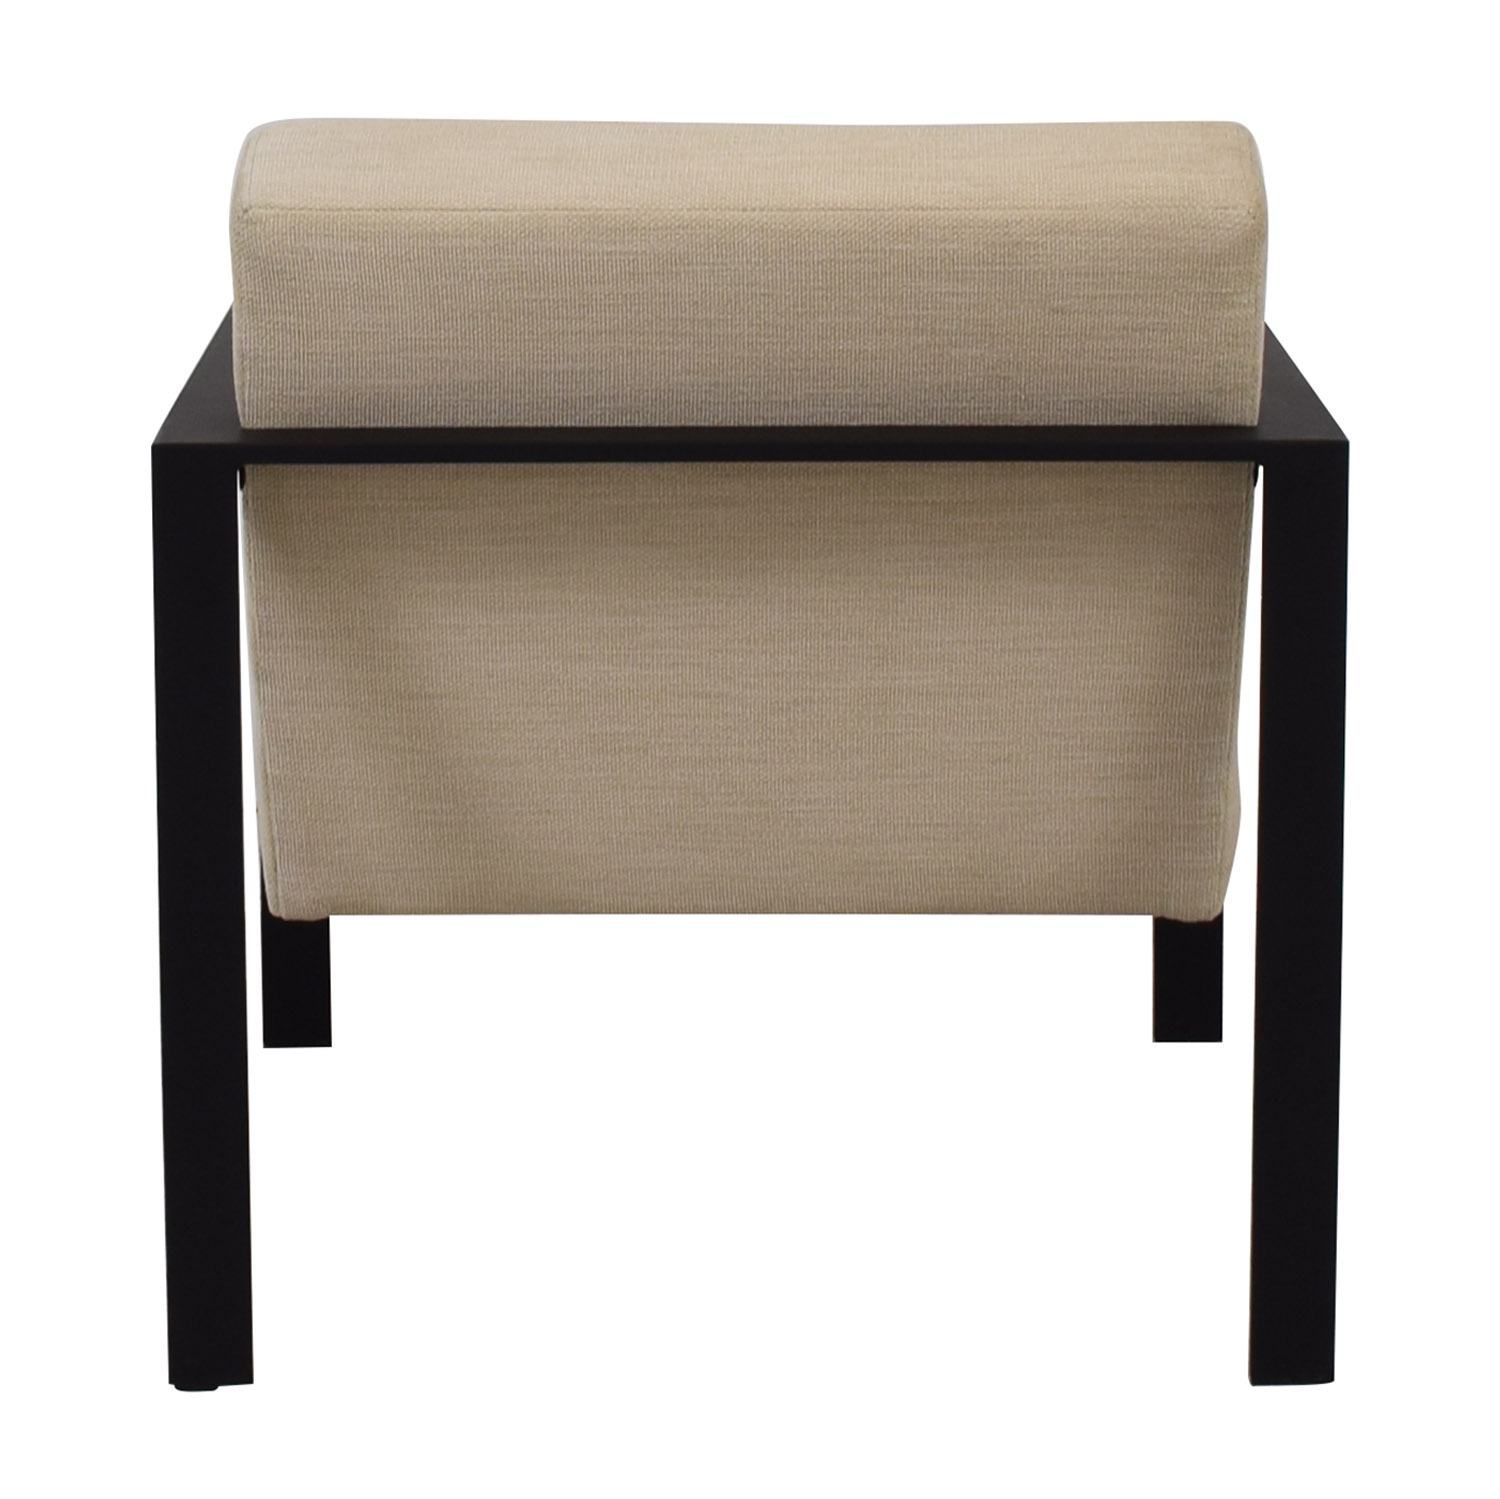 70 Off Cb2 Cb2 Dempsey Beige Upholstered Accent Chair Chairs